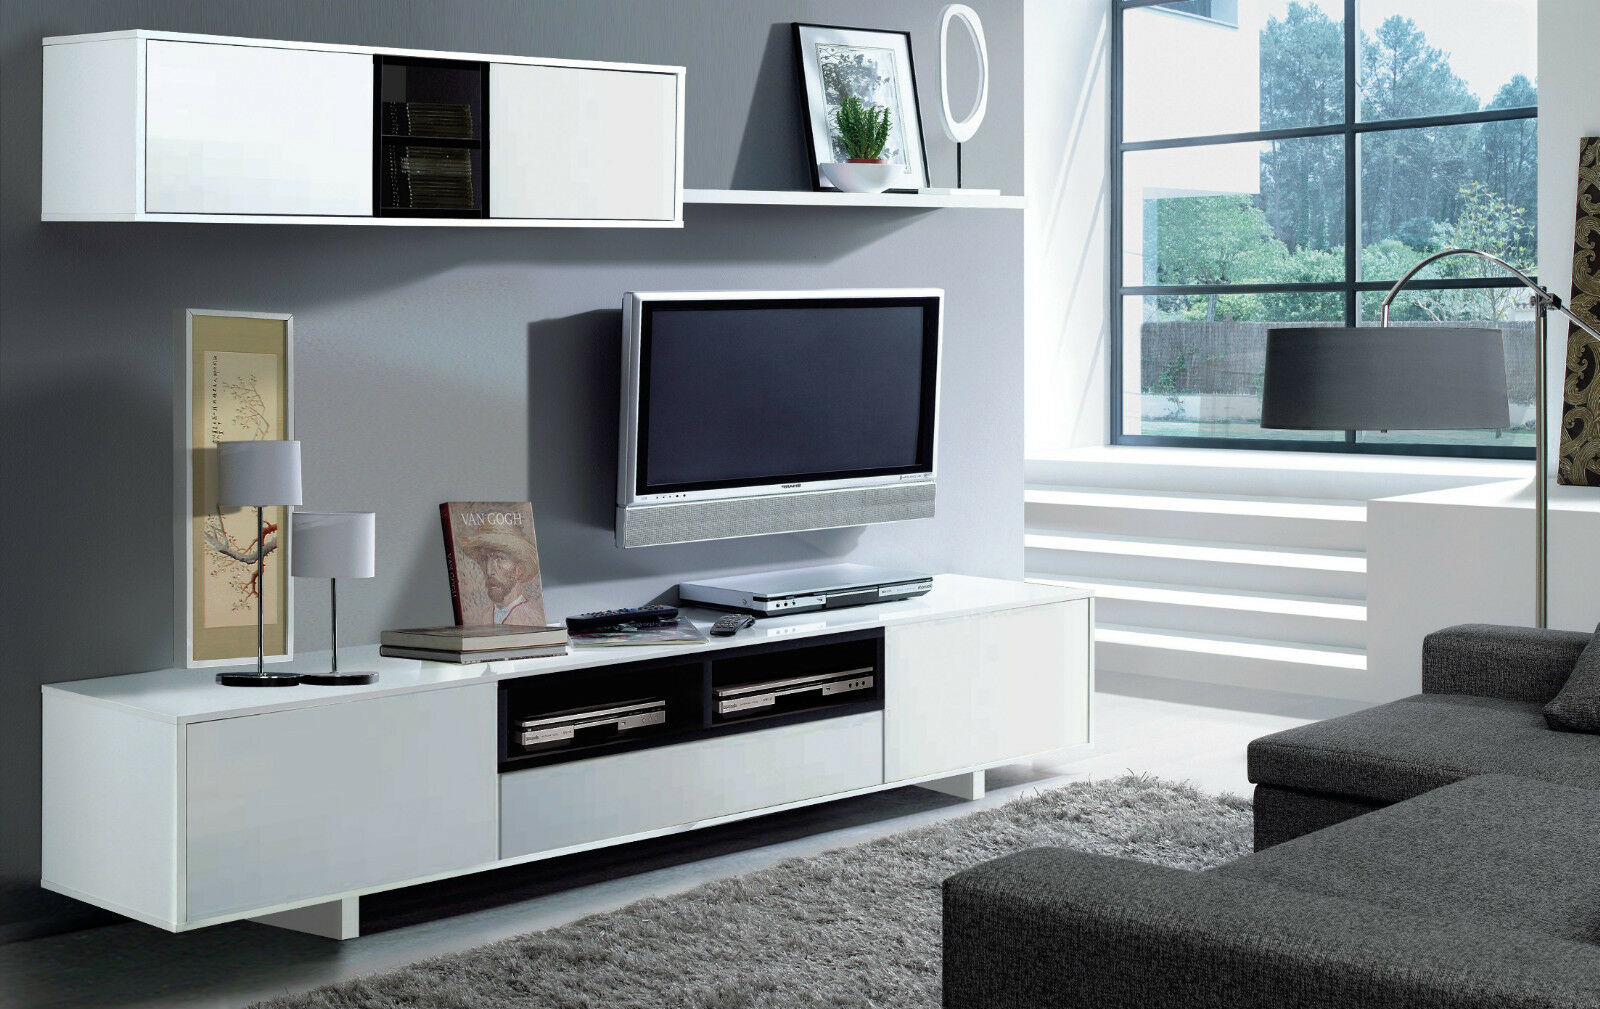 cool black and white tv wall units modular furniture small living room | Modern Complete Wall TV Entertainment Unit Cabinet Grey ...